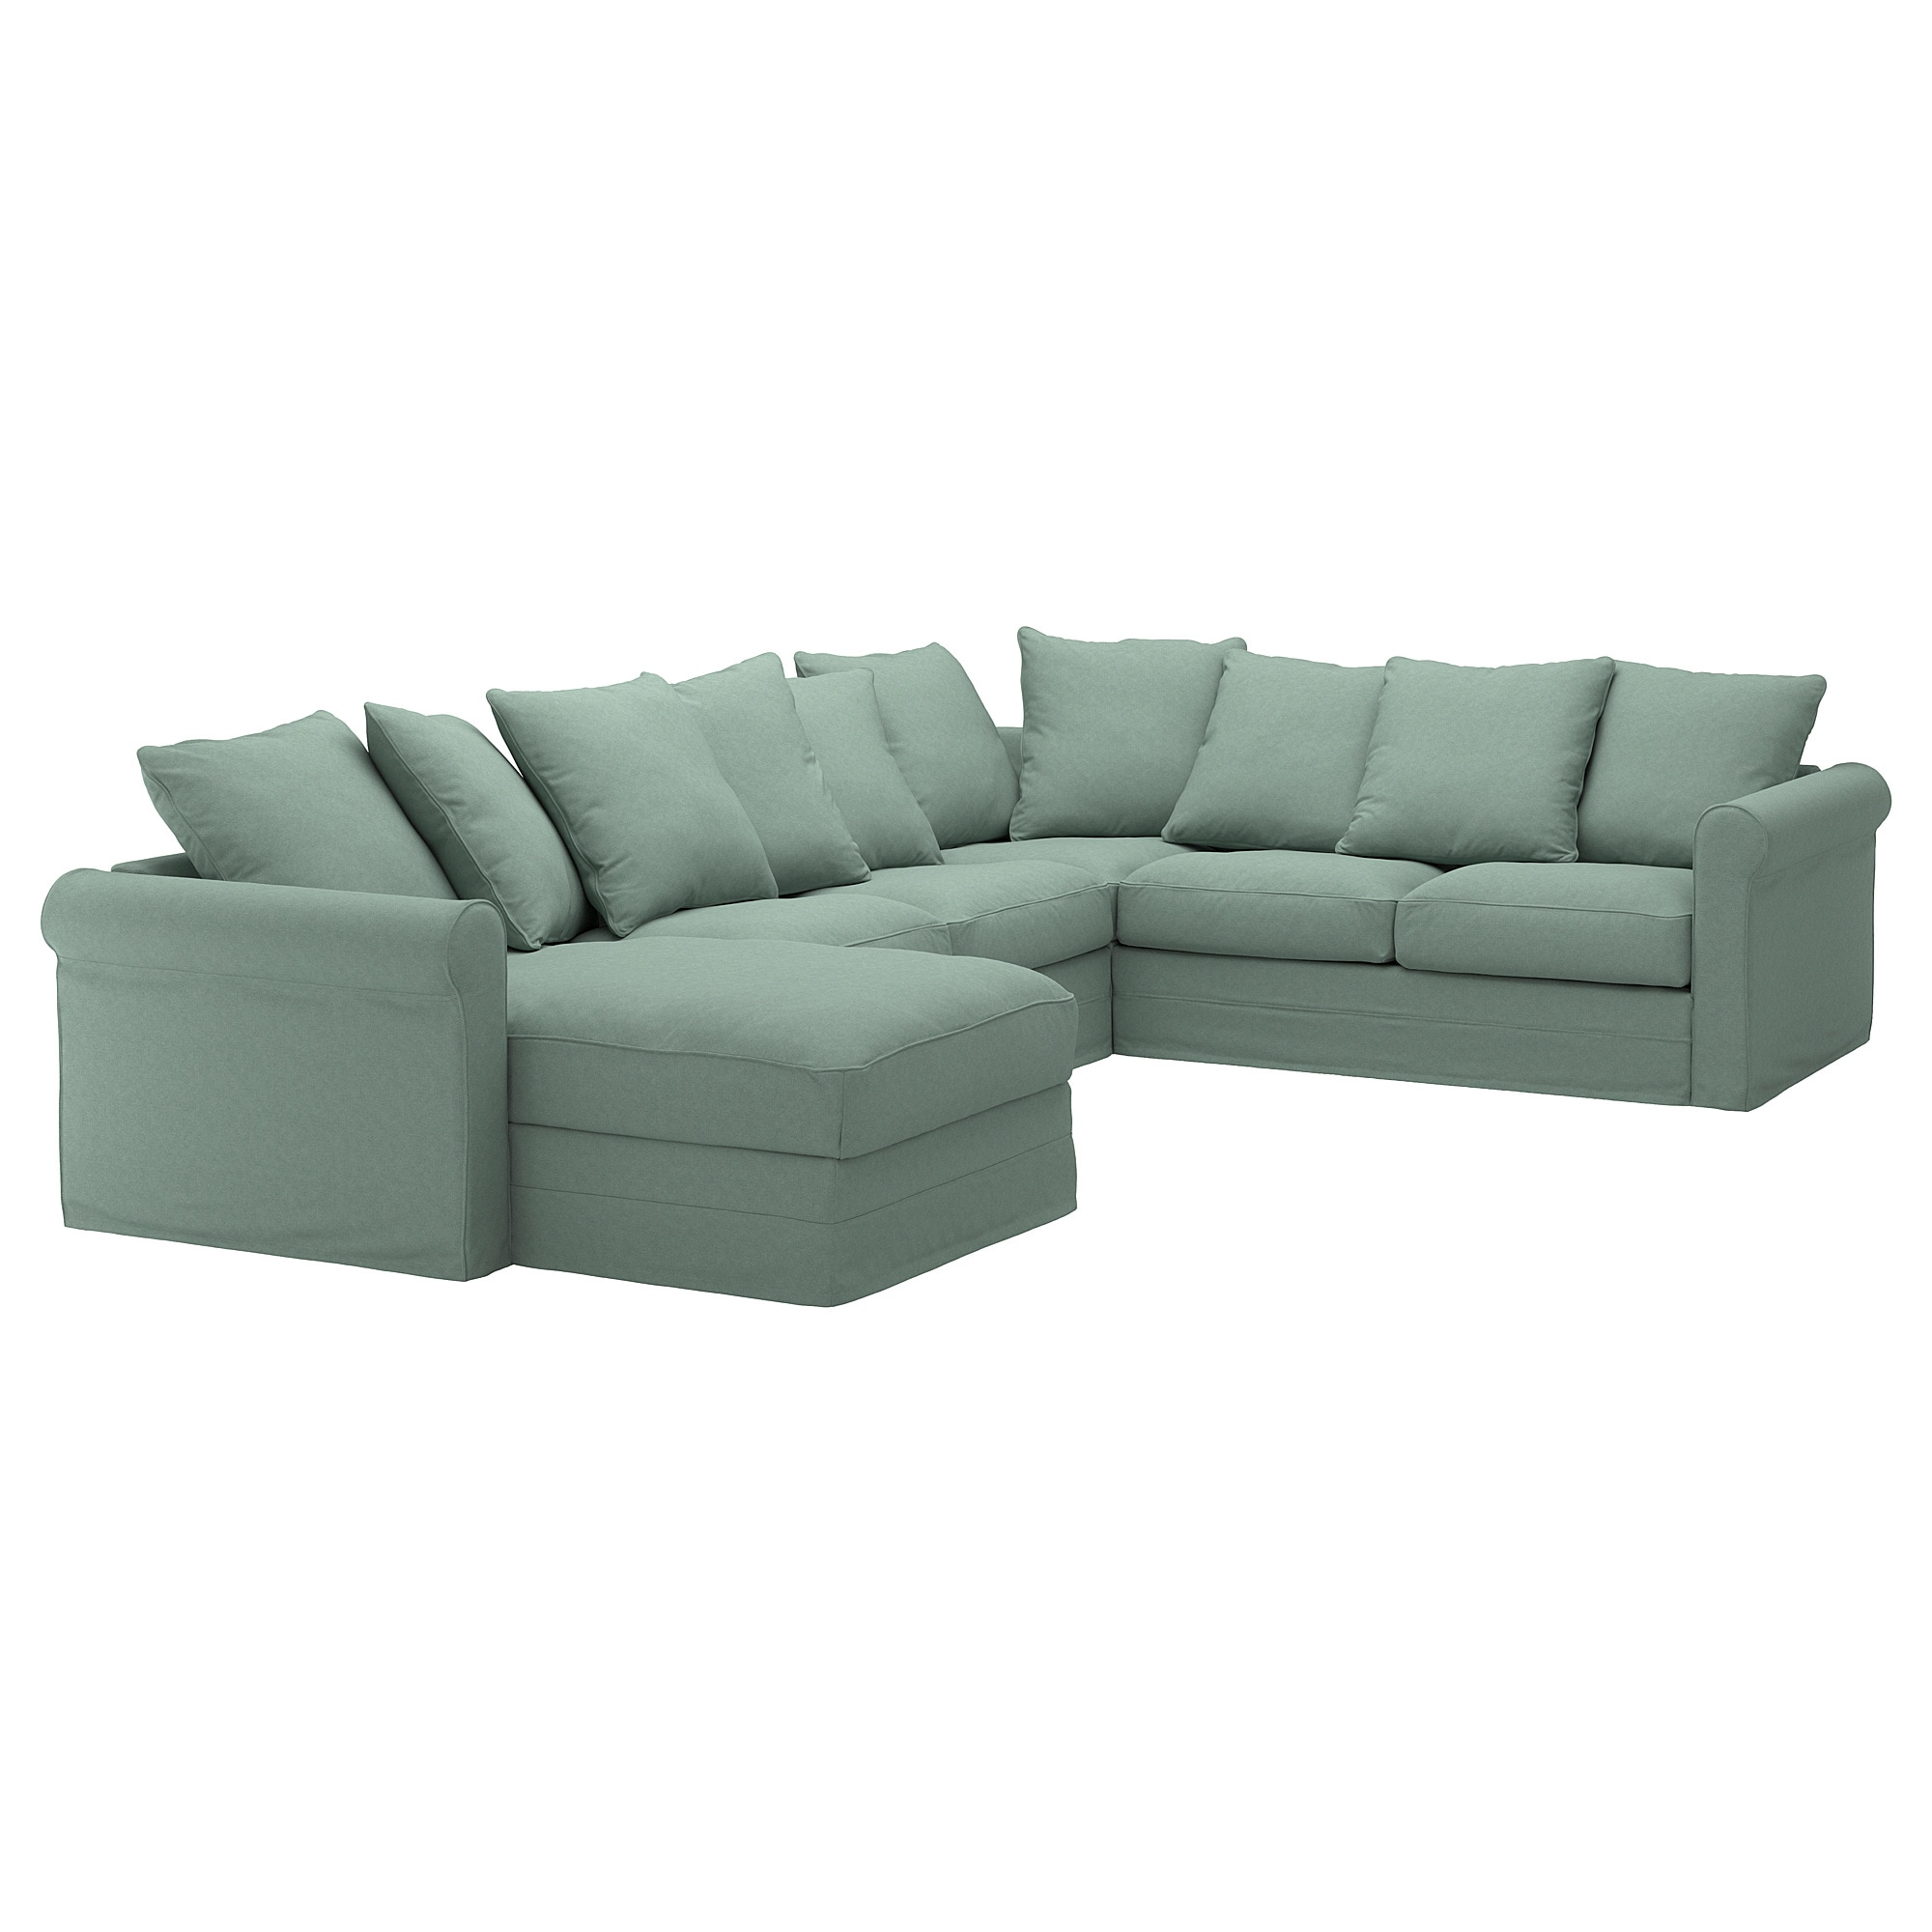 IKEA GRÖNLID corner sofa, 5-seat 10 year guarantee. Read about the terms